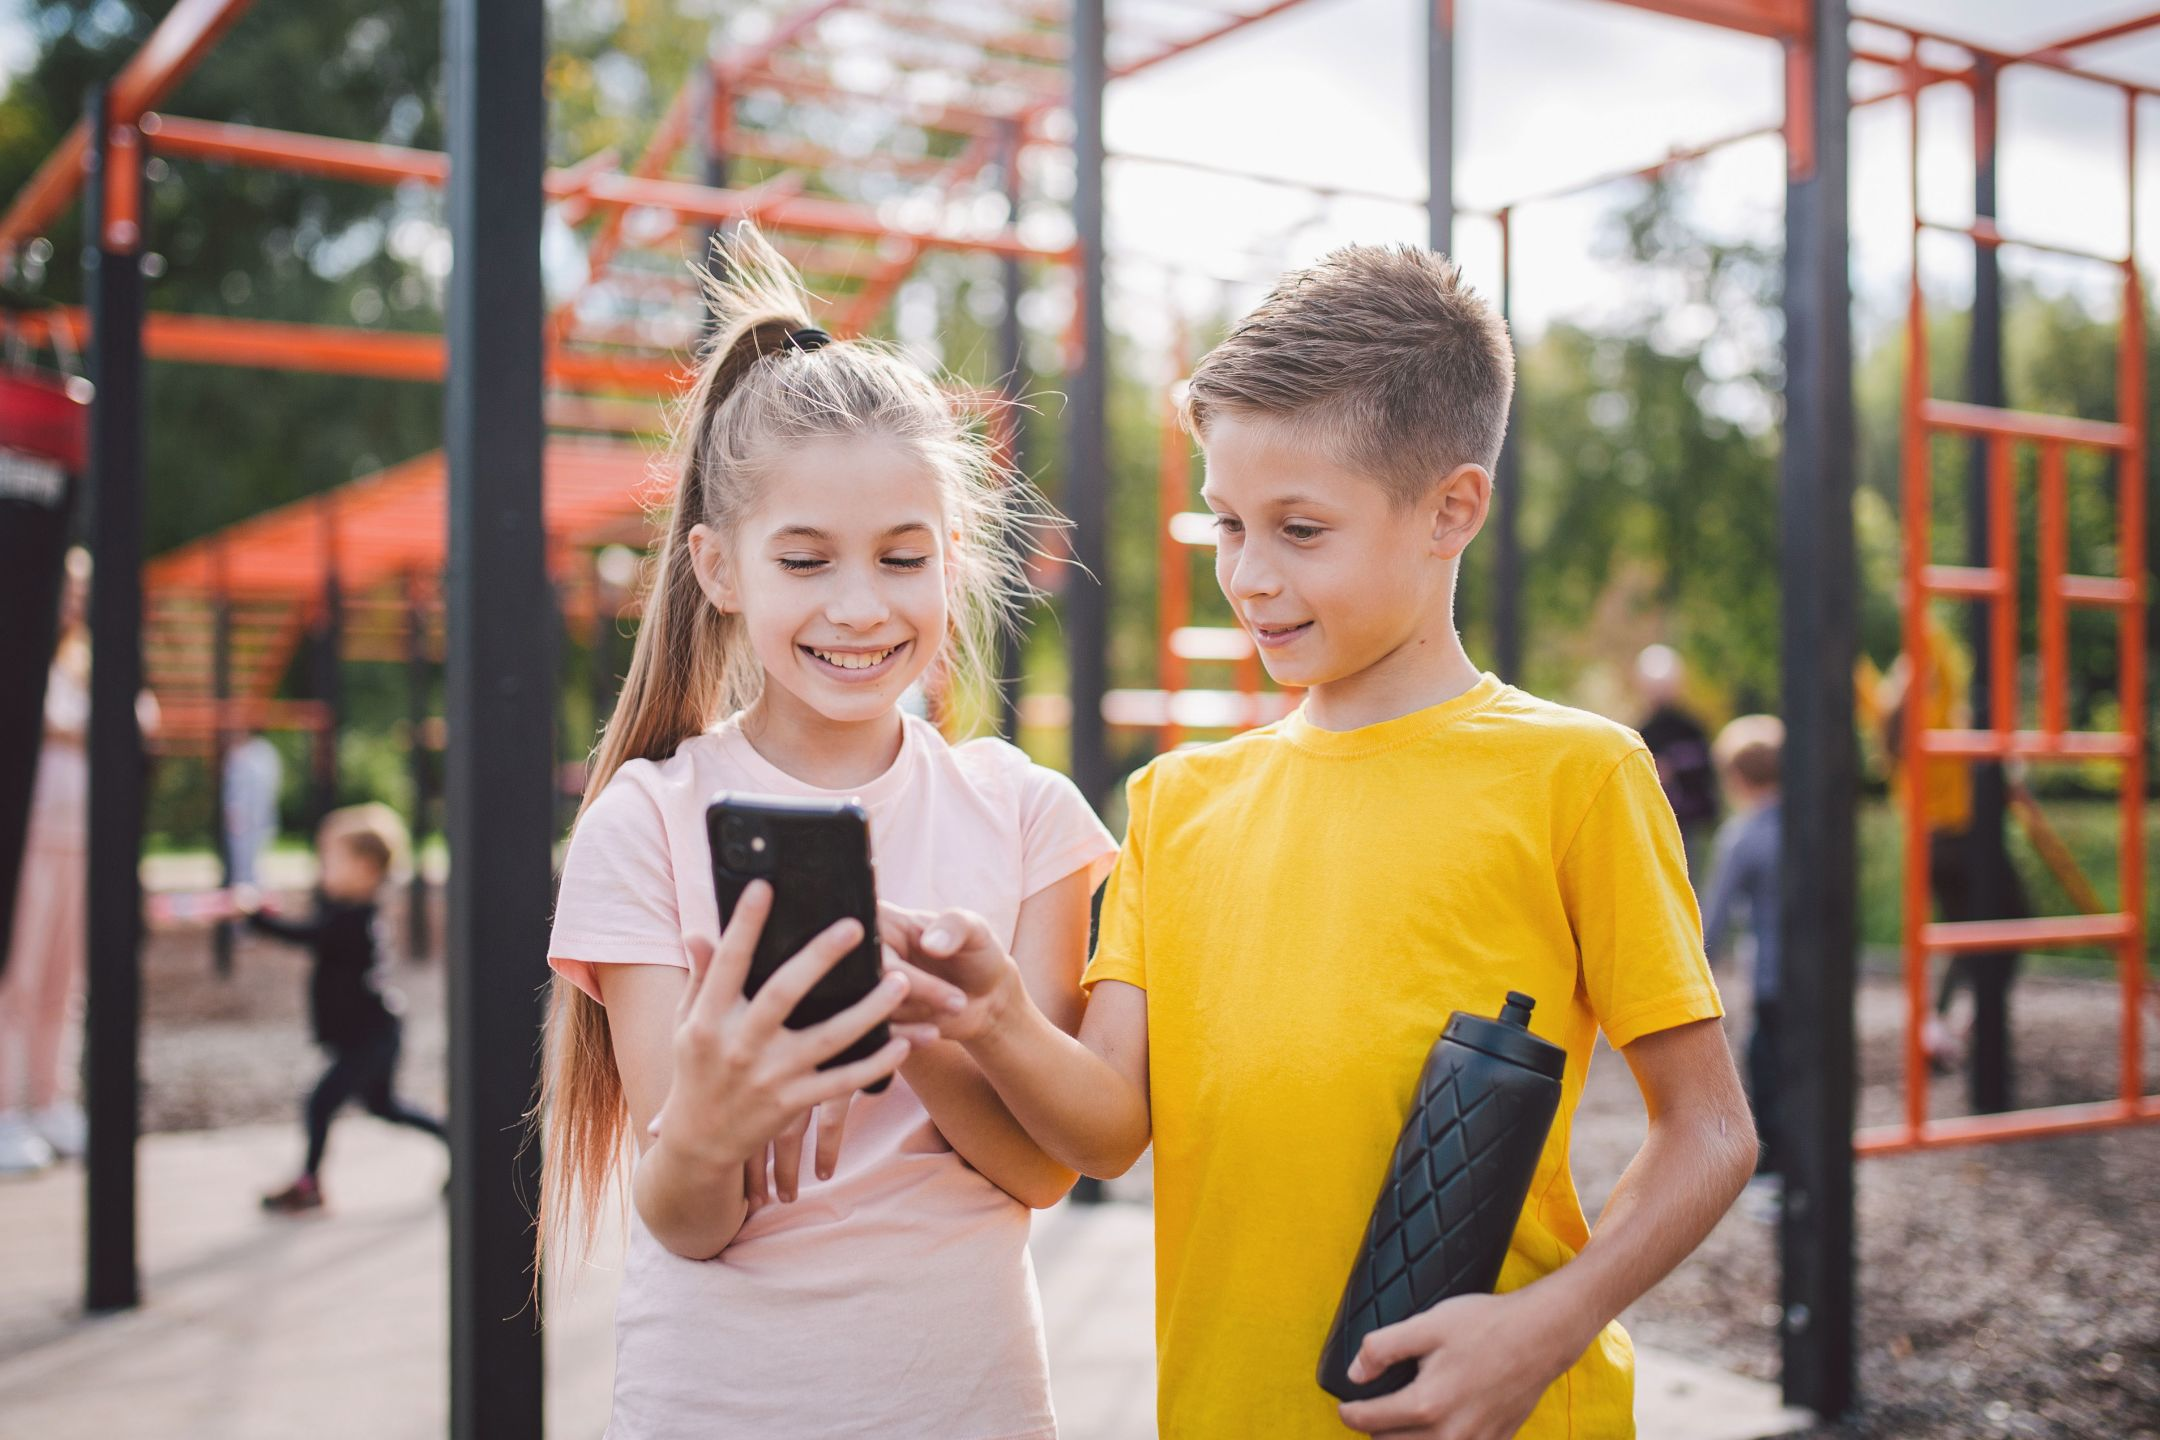 Two children taking break from playing in the park to look at at Oak on their mobile.